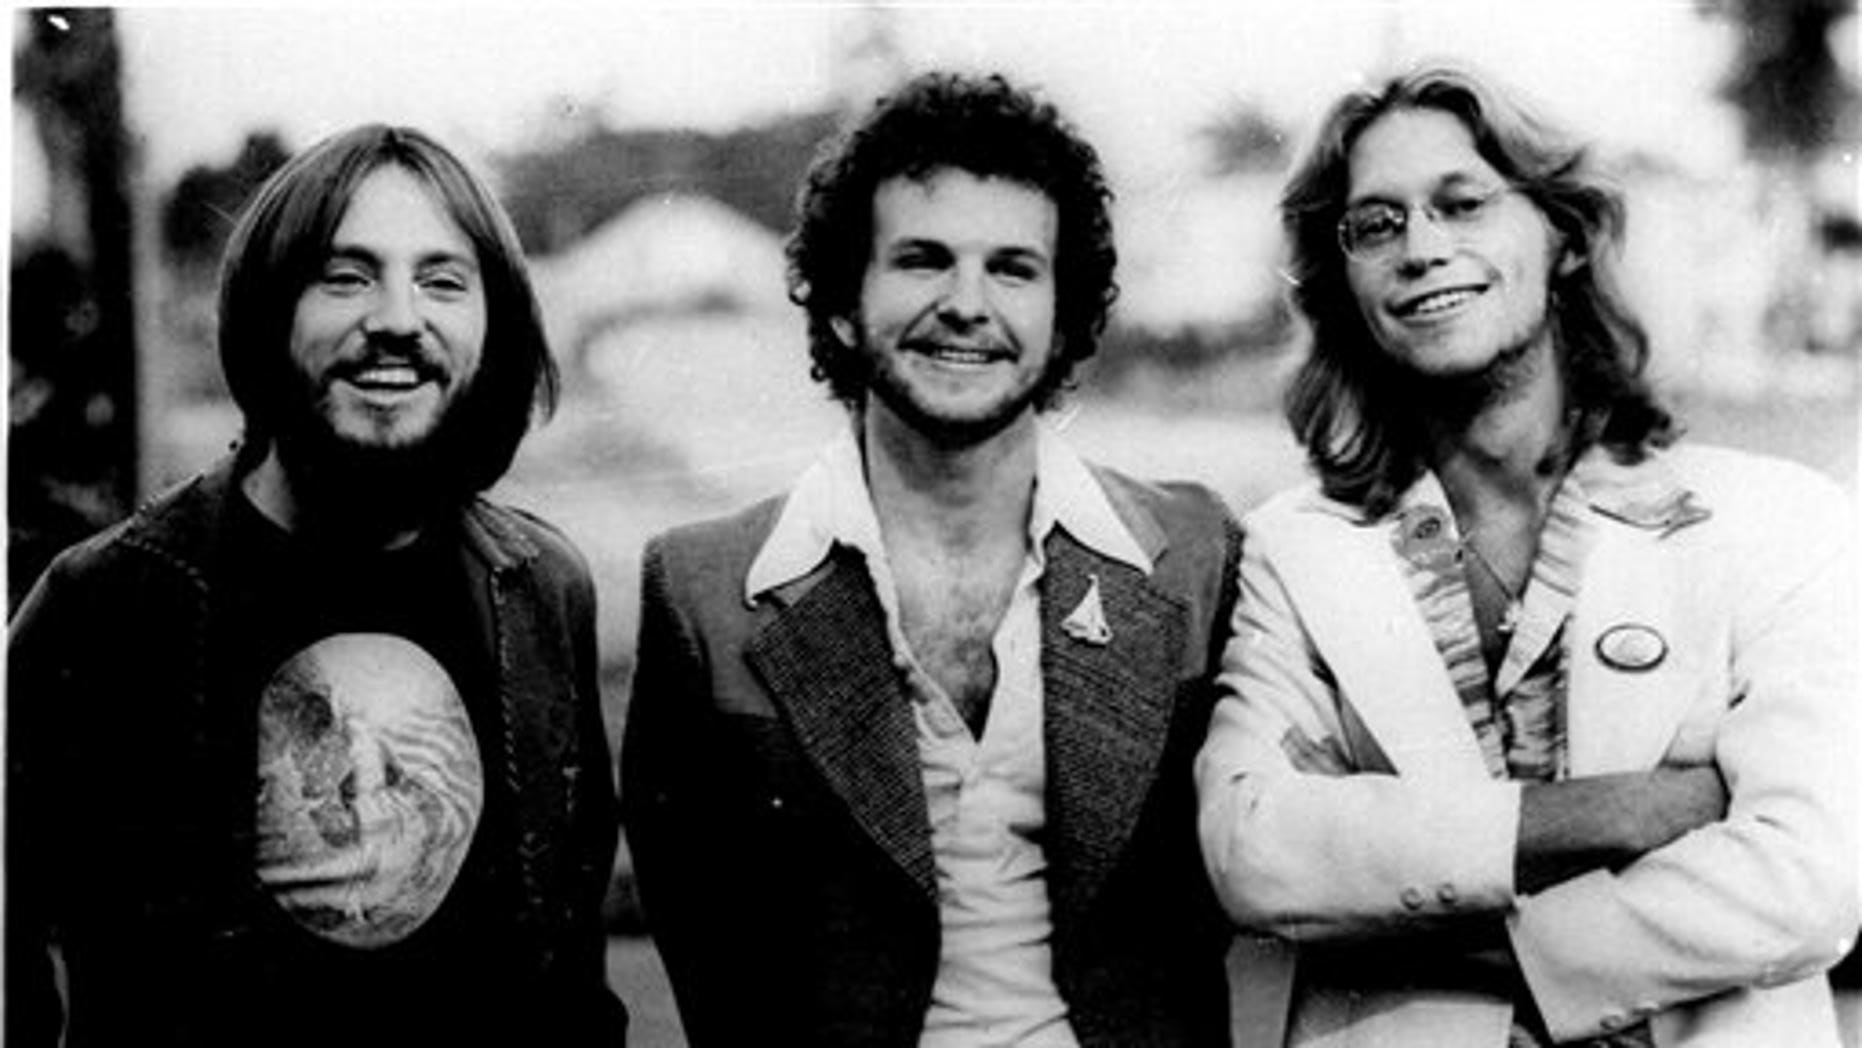 """The rock group """"America"""" is shown in this photo dated 1976. Members of the group, shown from left are: Dewey Bunnel, Dan Peek, and Gerry Beckley. Peek, a founding member of the popular 1970s band America and singer of high harmonies on hits that included """"A Horse With No Name"""" and """"Ventura Highway,"""" died Sunday in bed in his home in Farmington, Mo., his father said Tuesday, July 26, 2011. (AP)"""